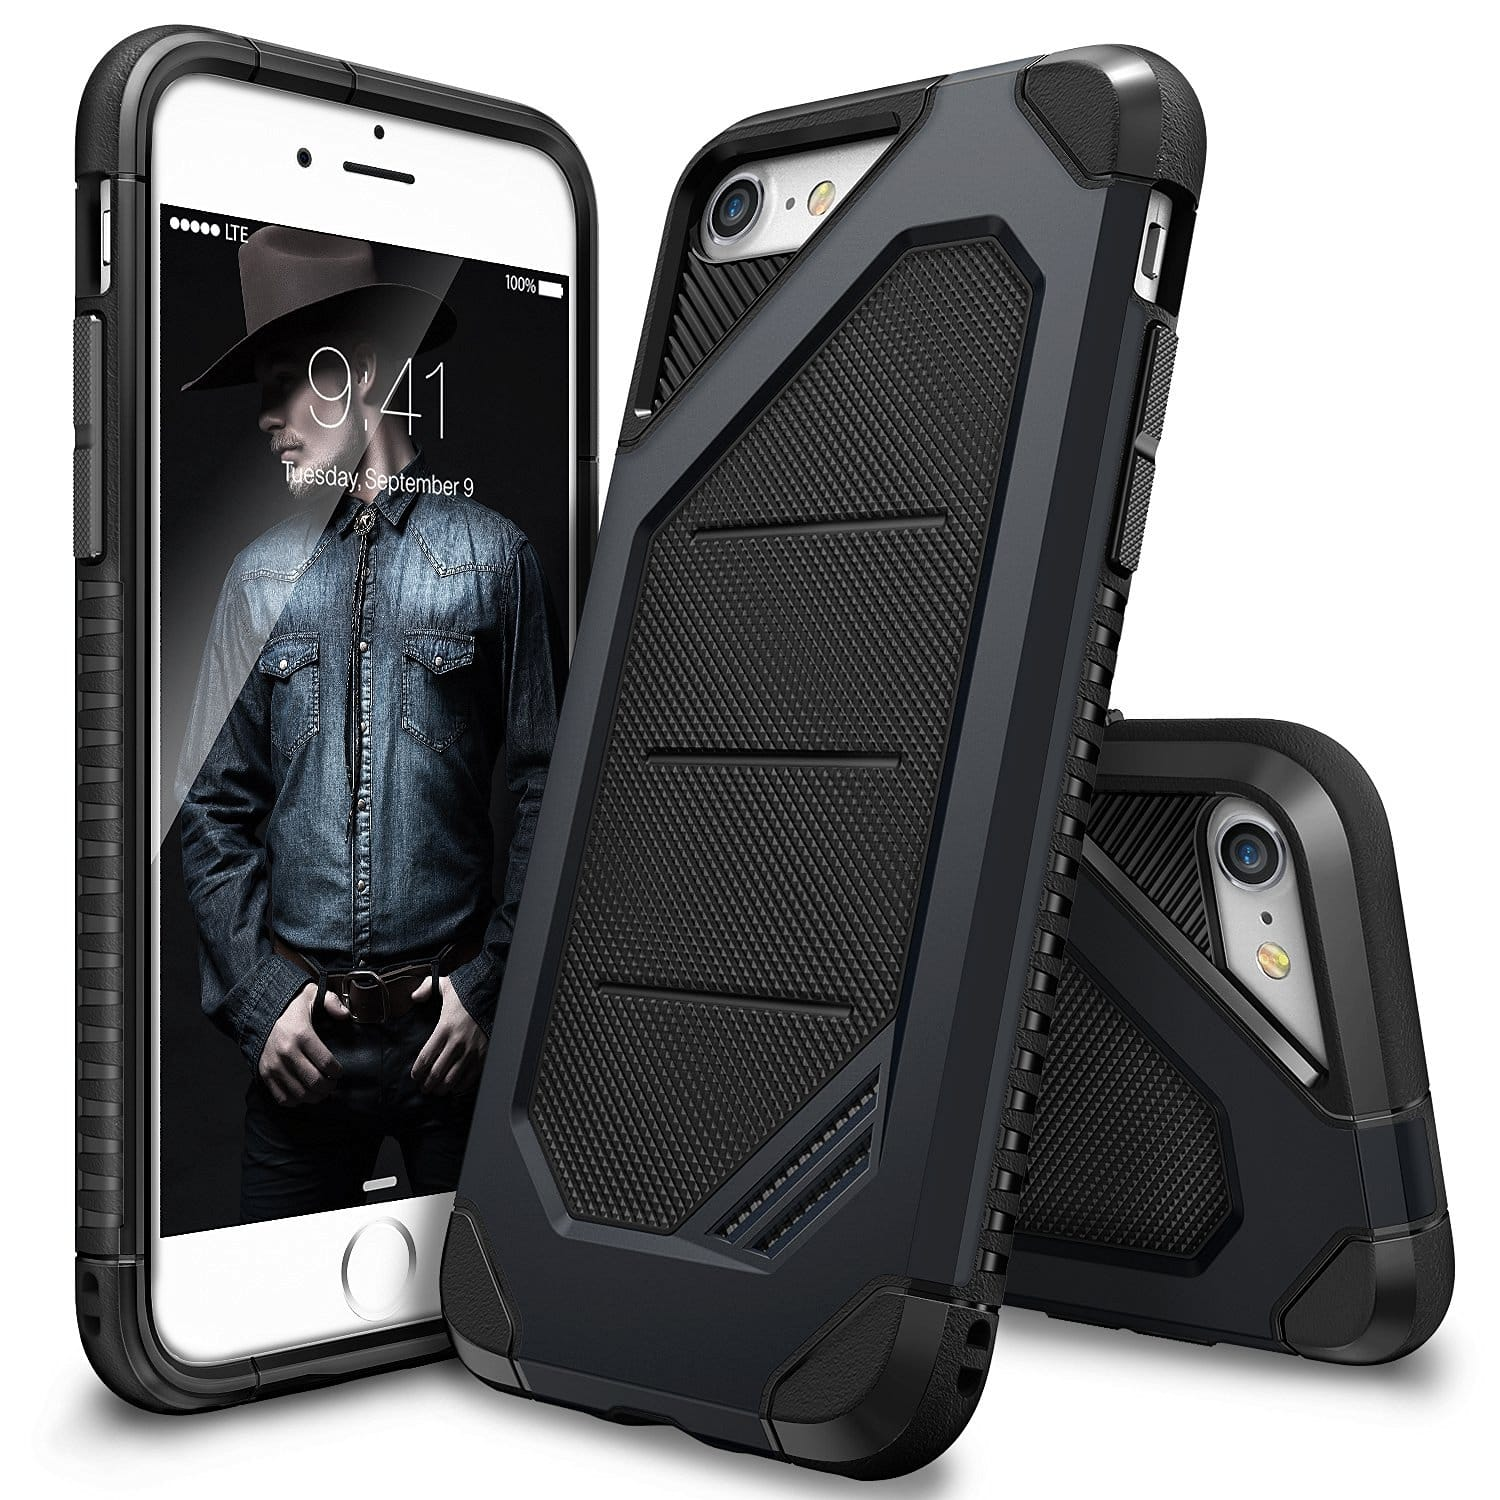 Ringke  Cases for iPhone 7 and iPhone 7 Plus $0.99 + Free Shipping